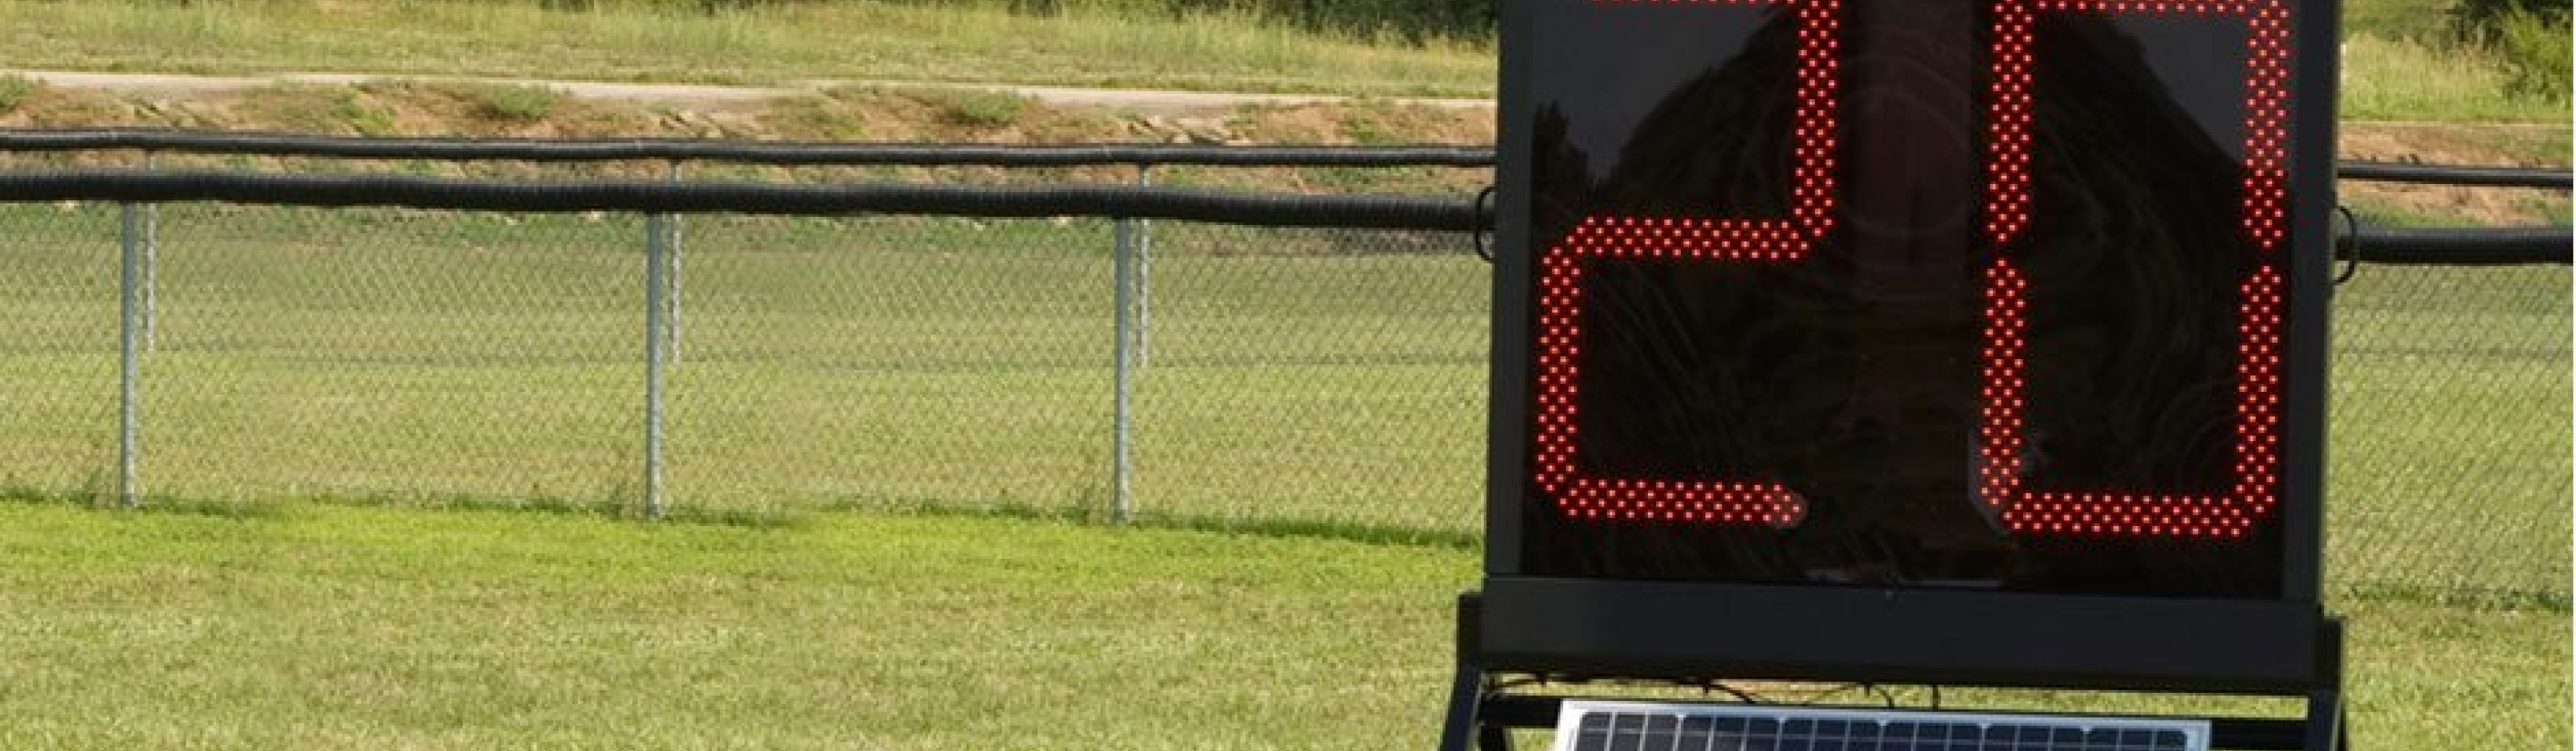 play clock walled on trailer solar